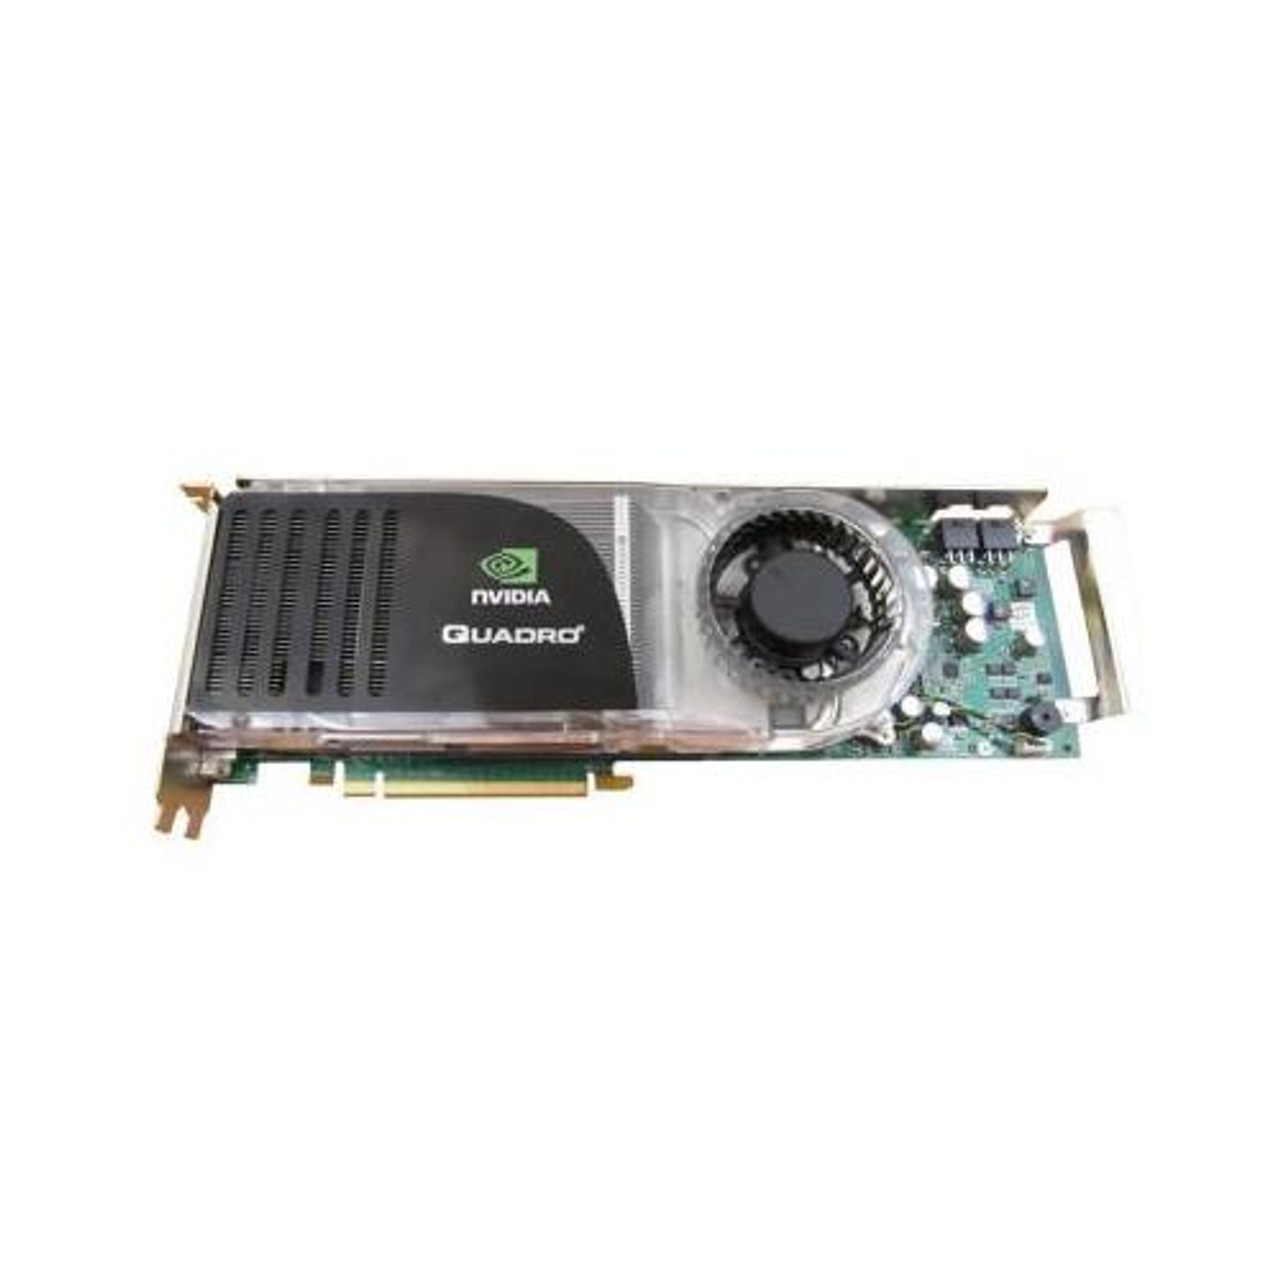 NVIDIA QUADRO FX 5600 1.5GB DUAL DVI GRAPHICS CARD 455676-001 456139-001